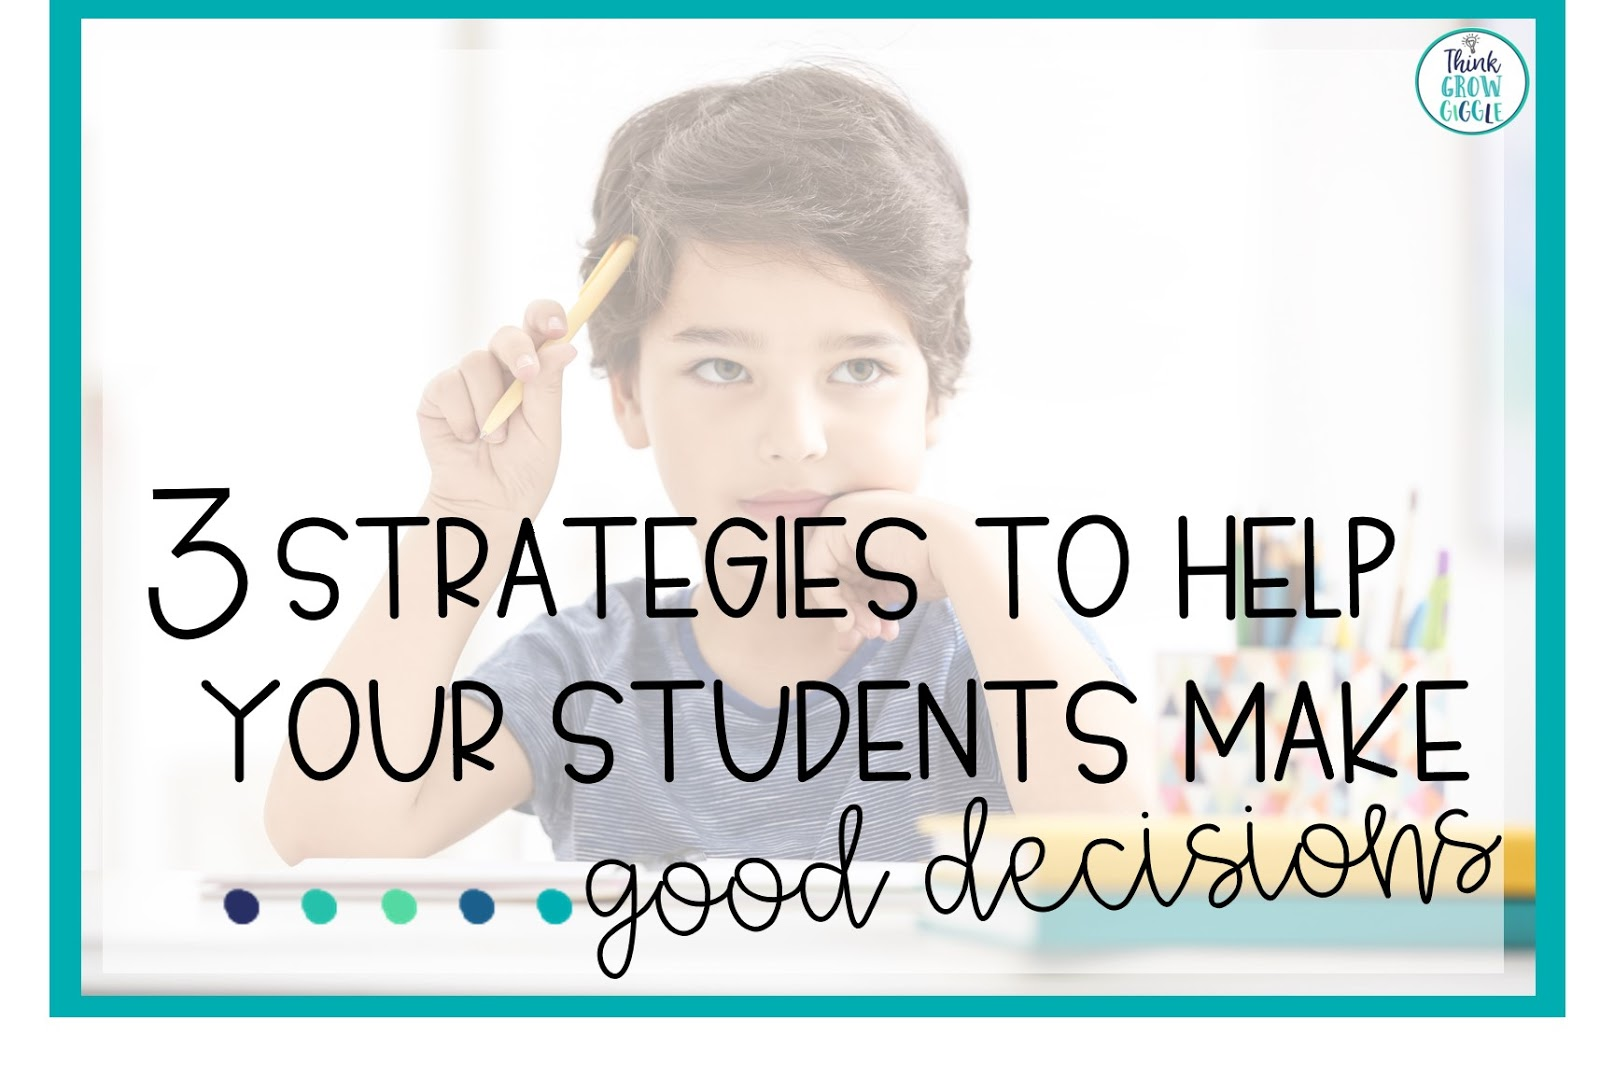 3 Strategies To Help Your Students Make Good Decisions